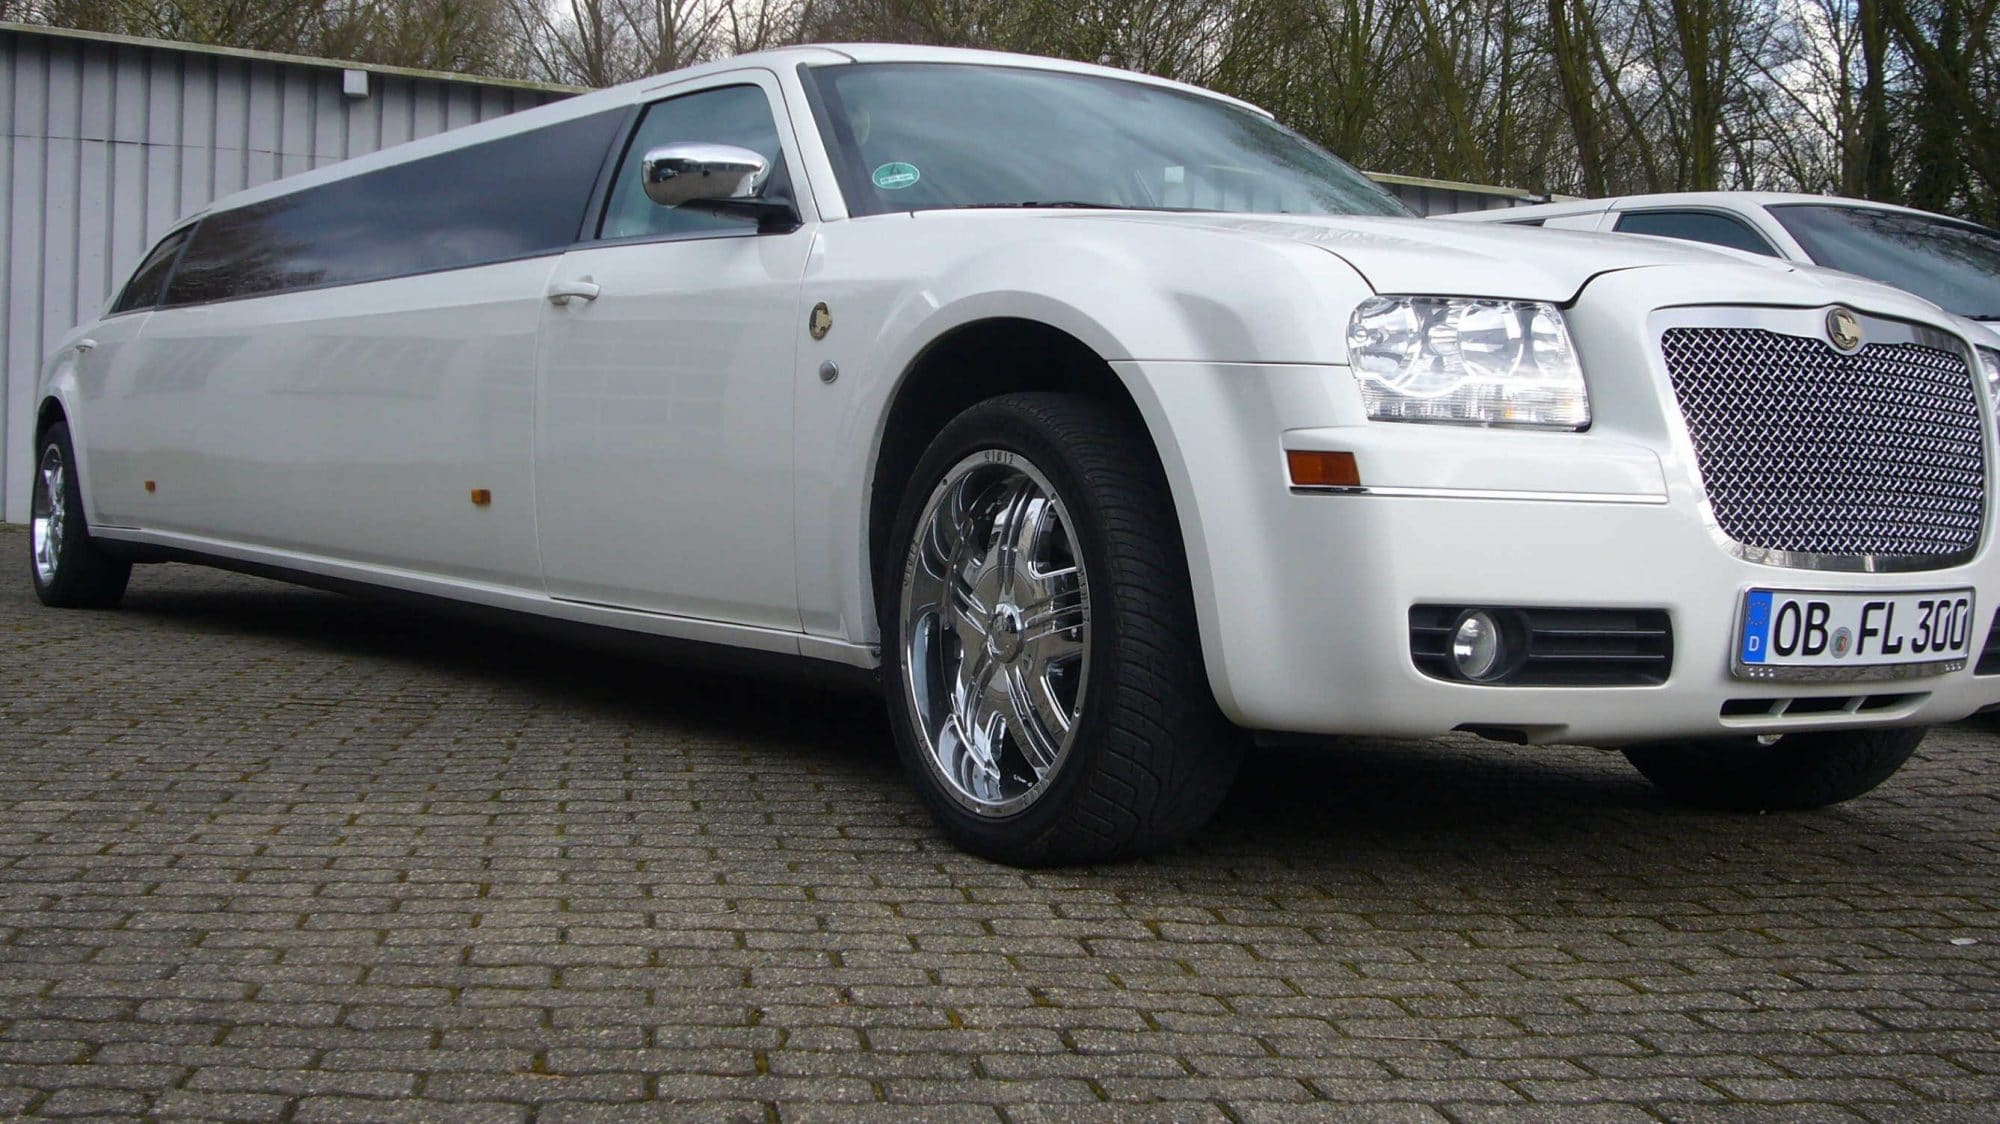 Limousine Chrysler 300C - Florida Exclusiv Car in Oberhausen